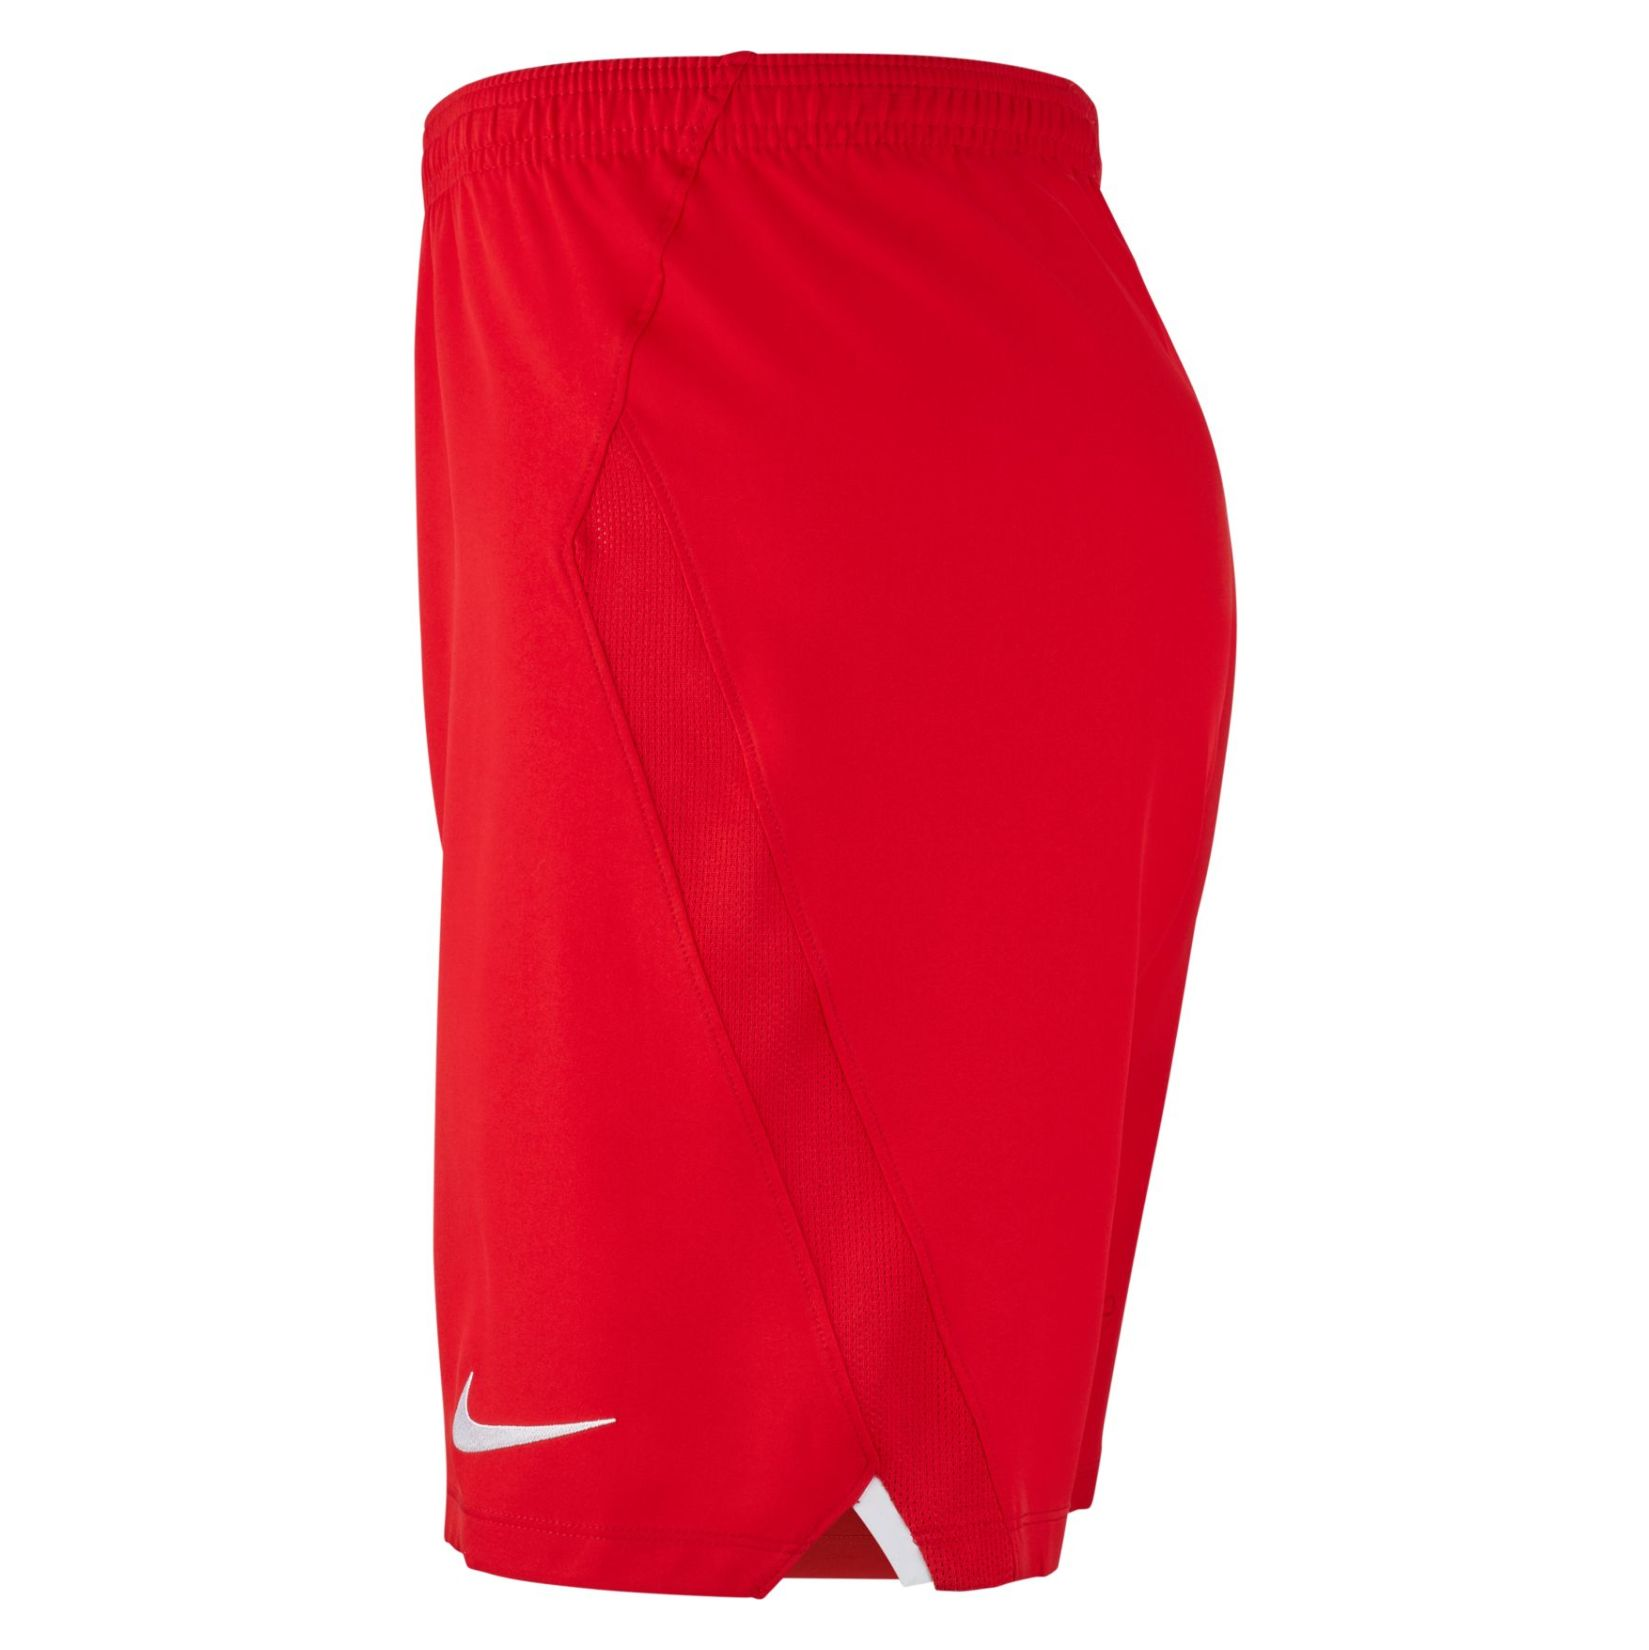 Nike Dri-fit Laser Iv Woven Short Without Brief University Red-University Red-White